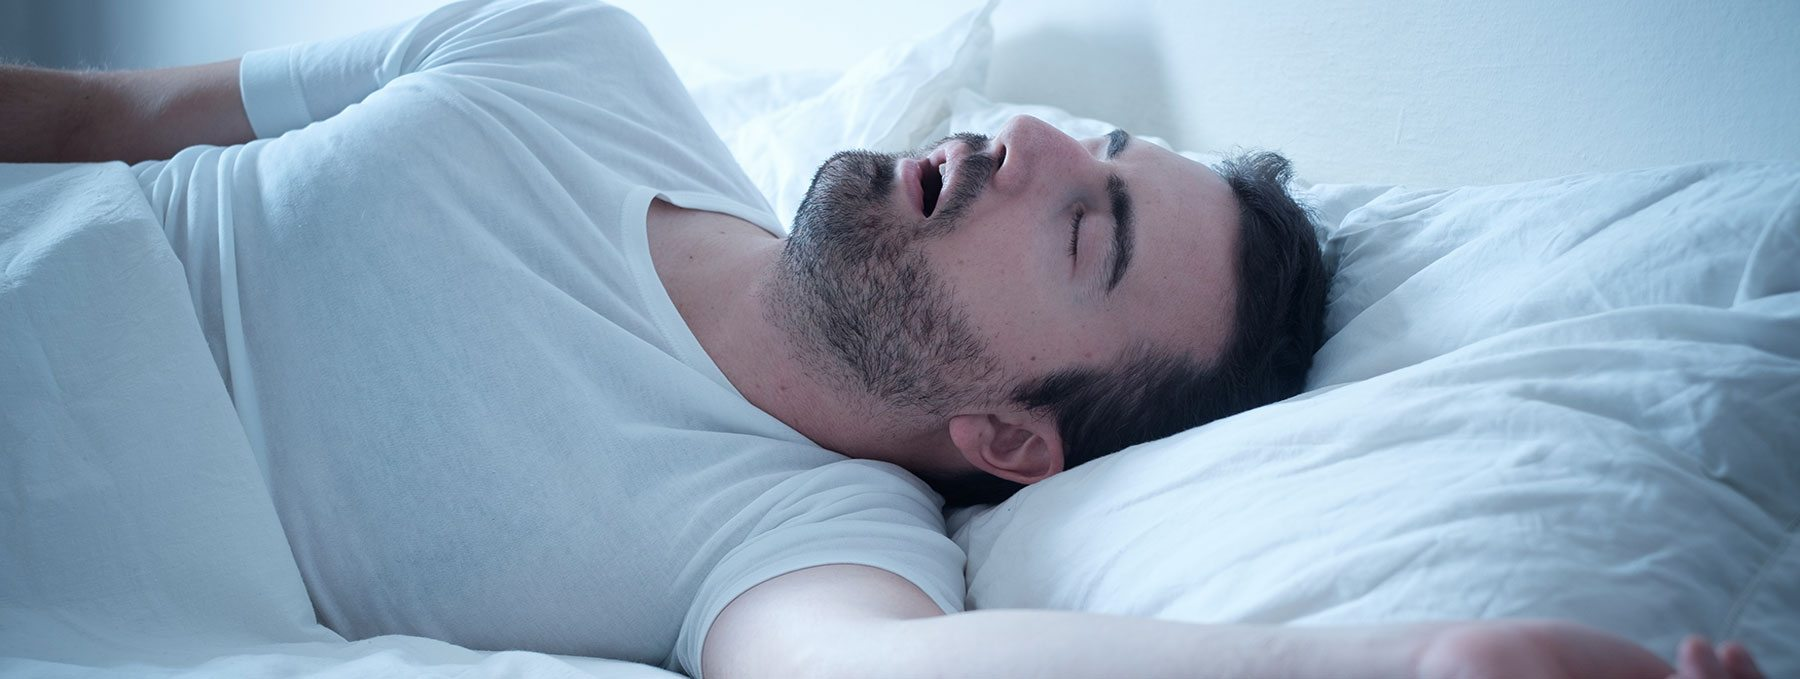 What diseases can talk about increased sleepiness